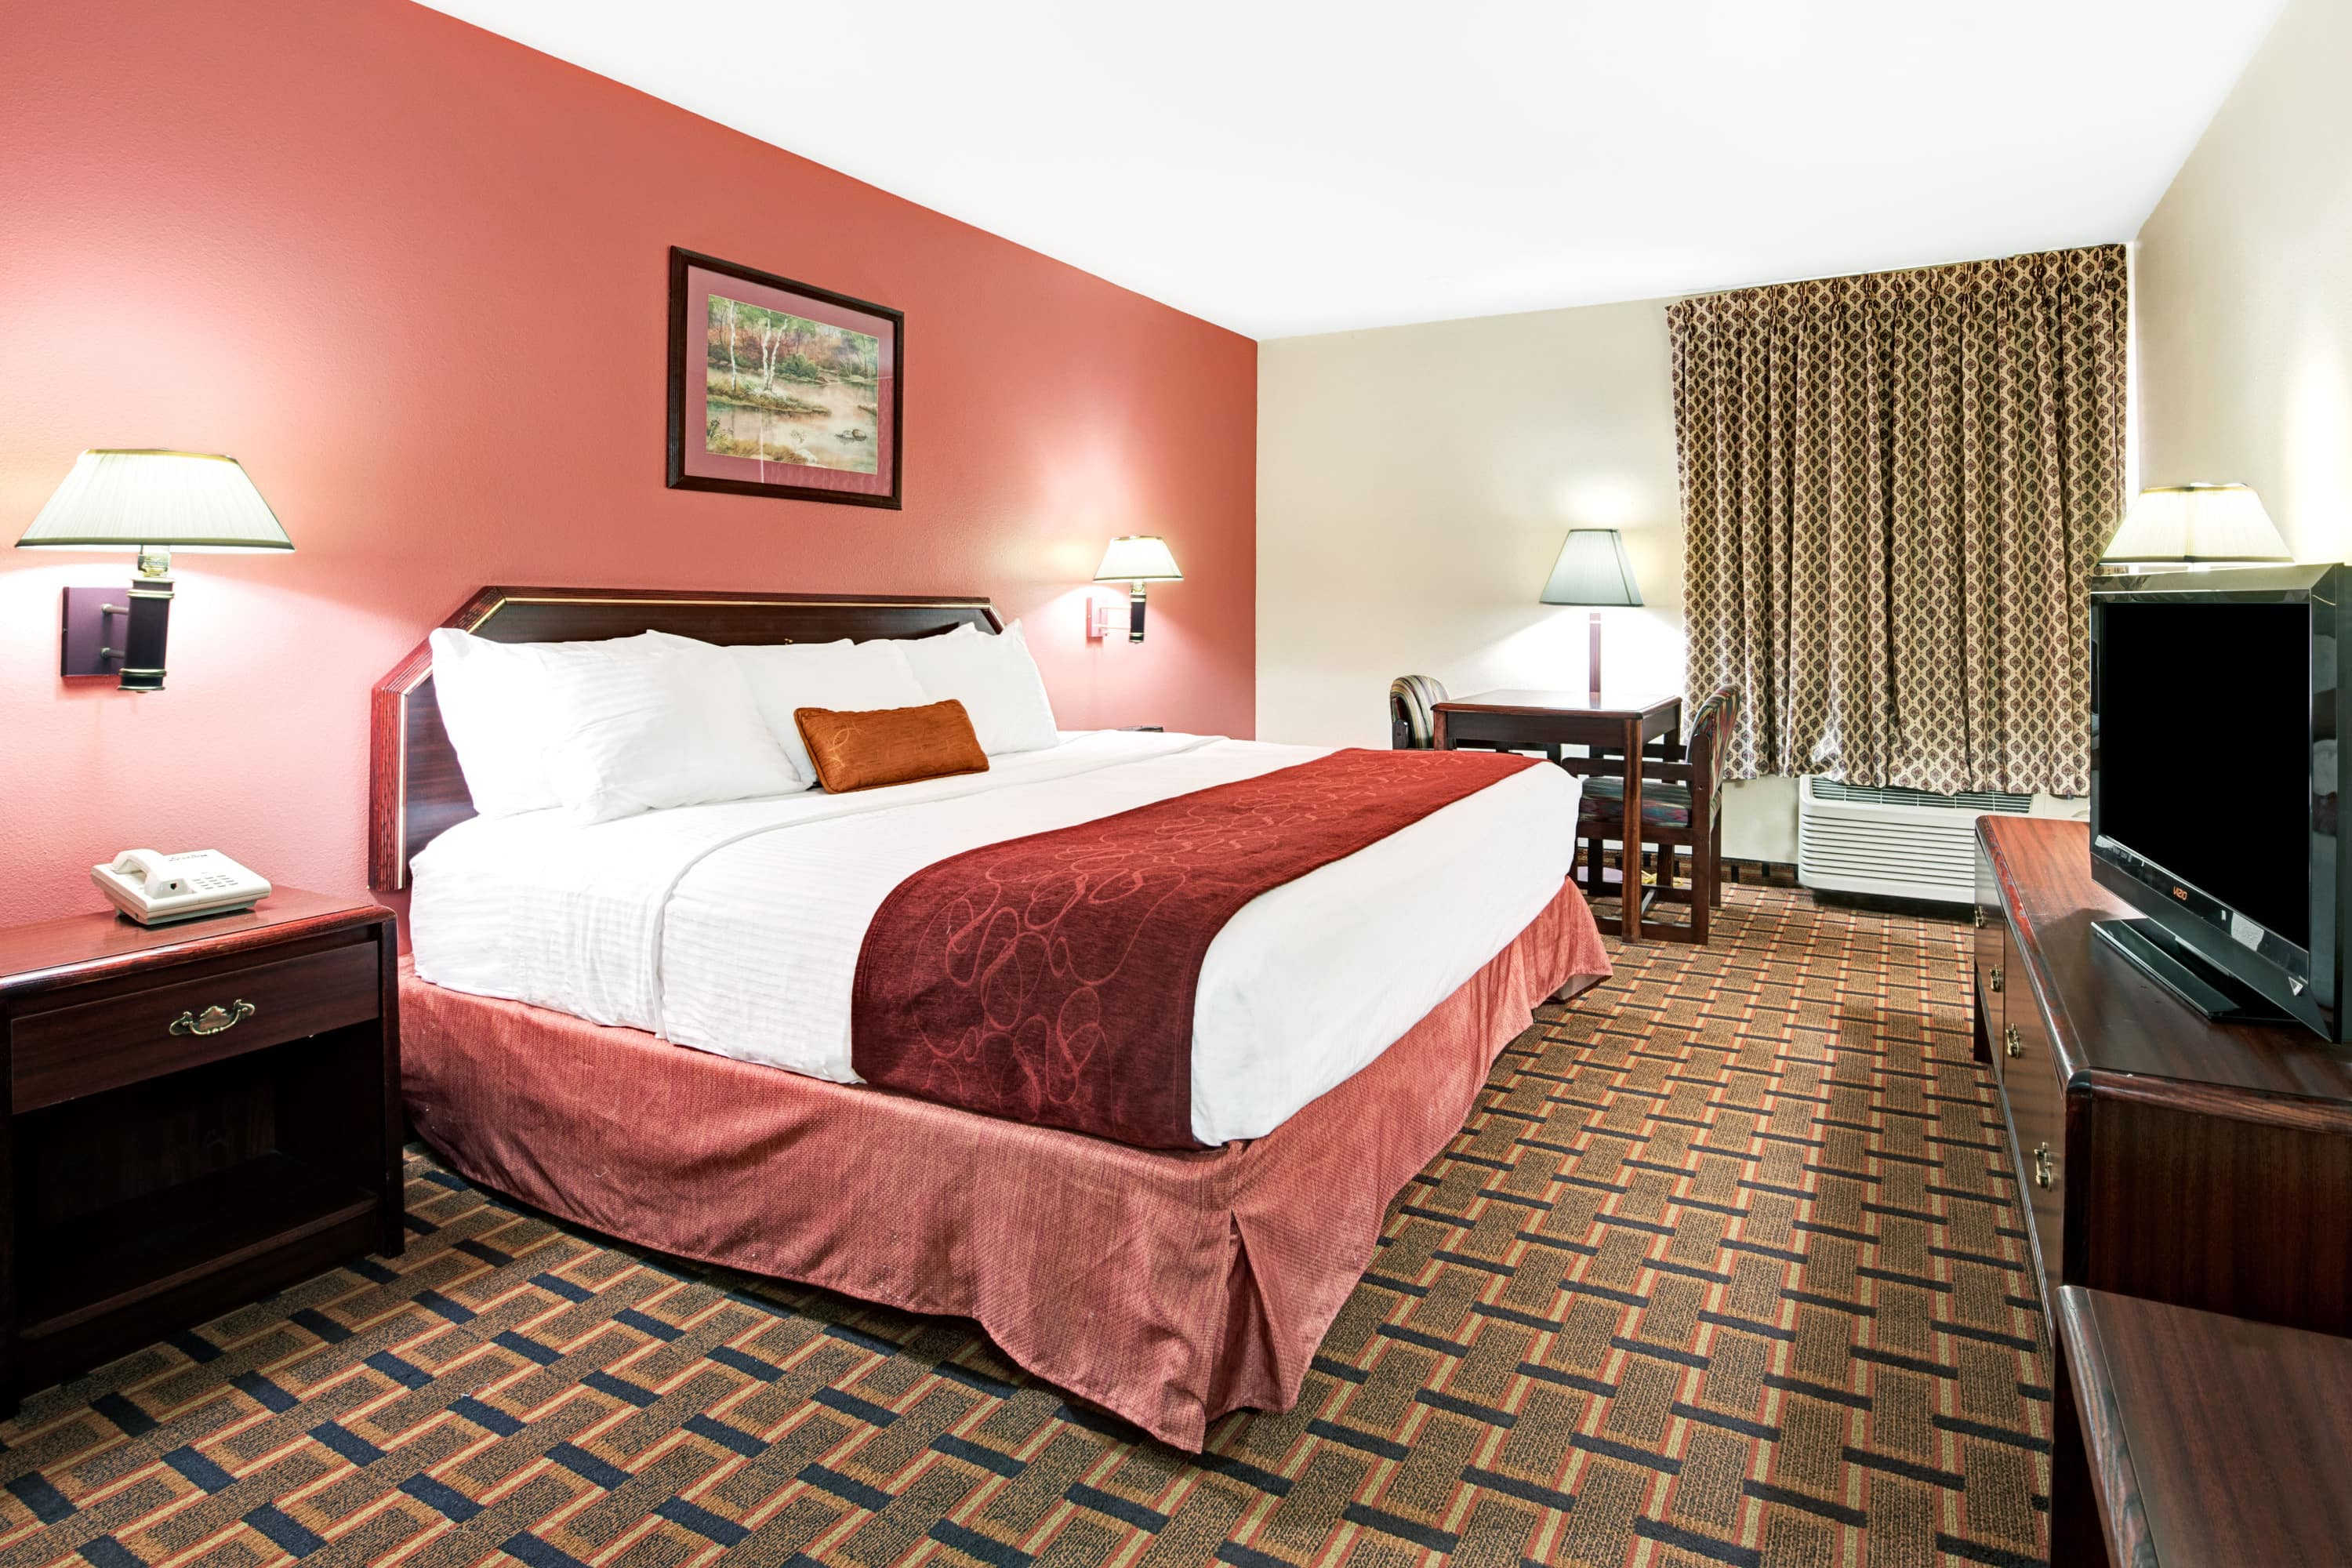 Guest room at the Days Inn Dallas Plano in Plano, Texas